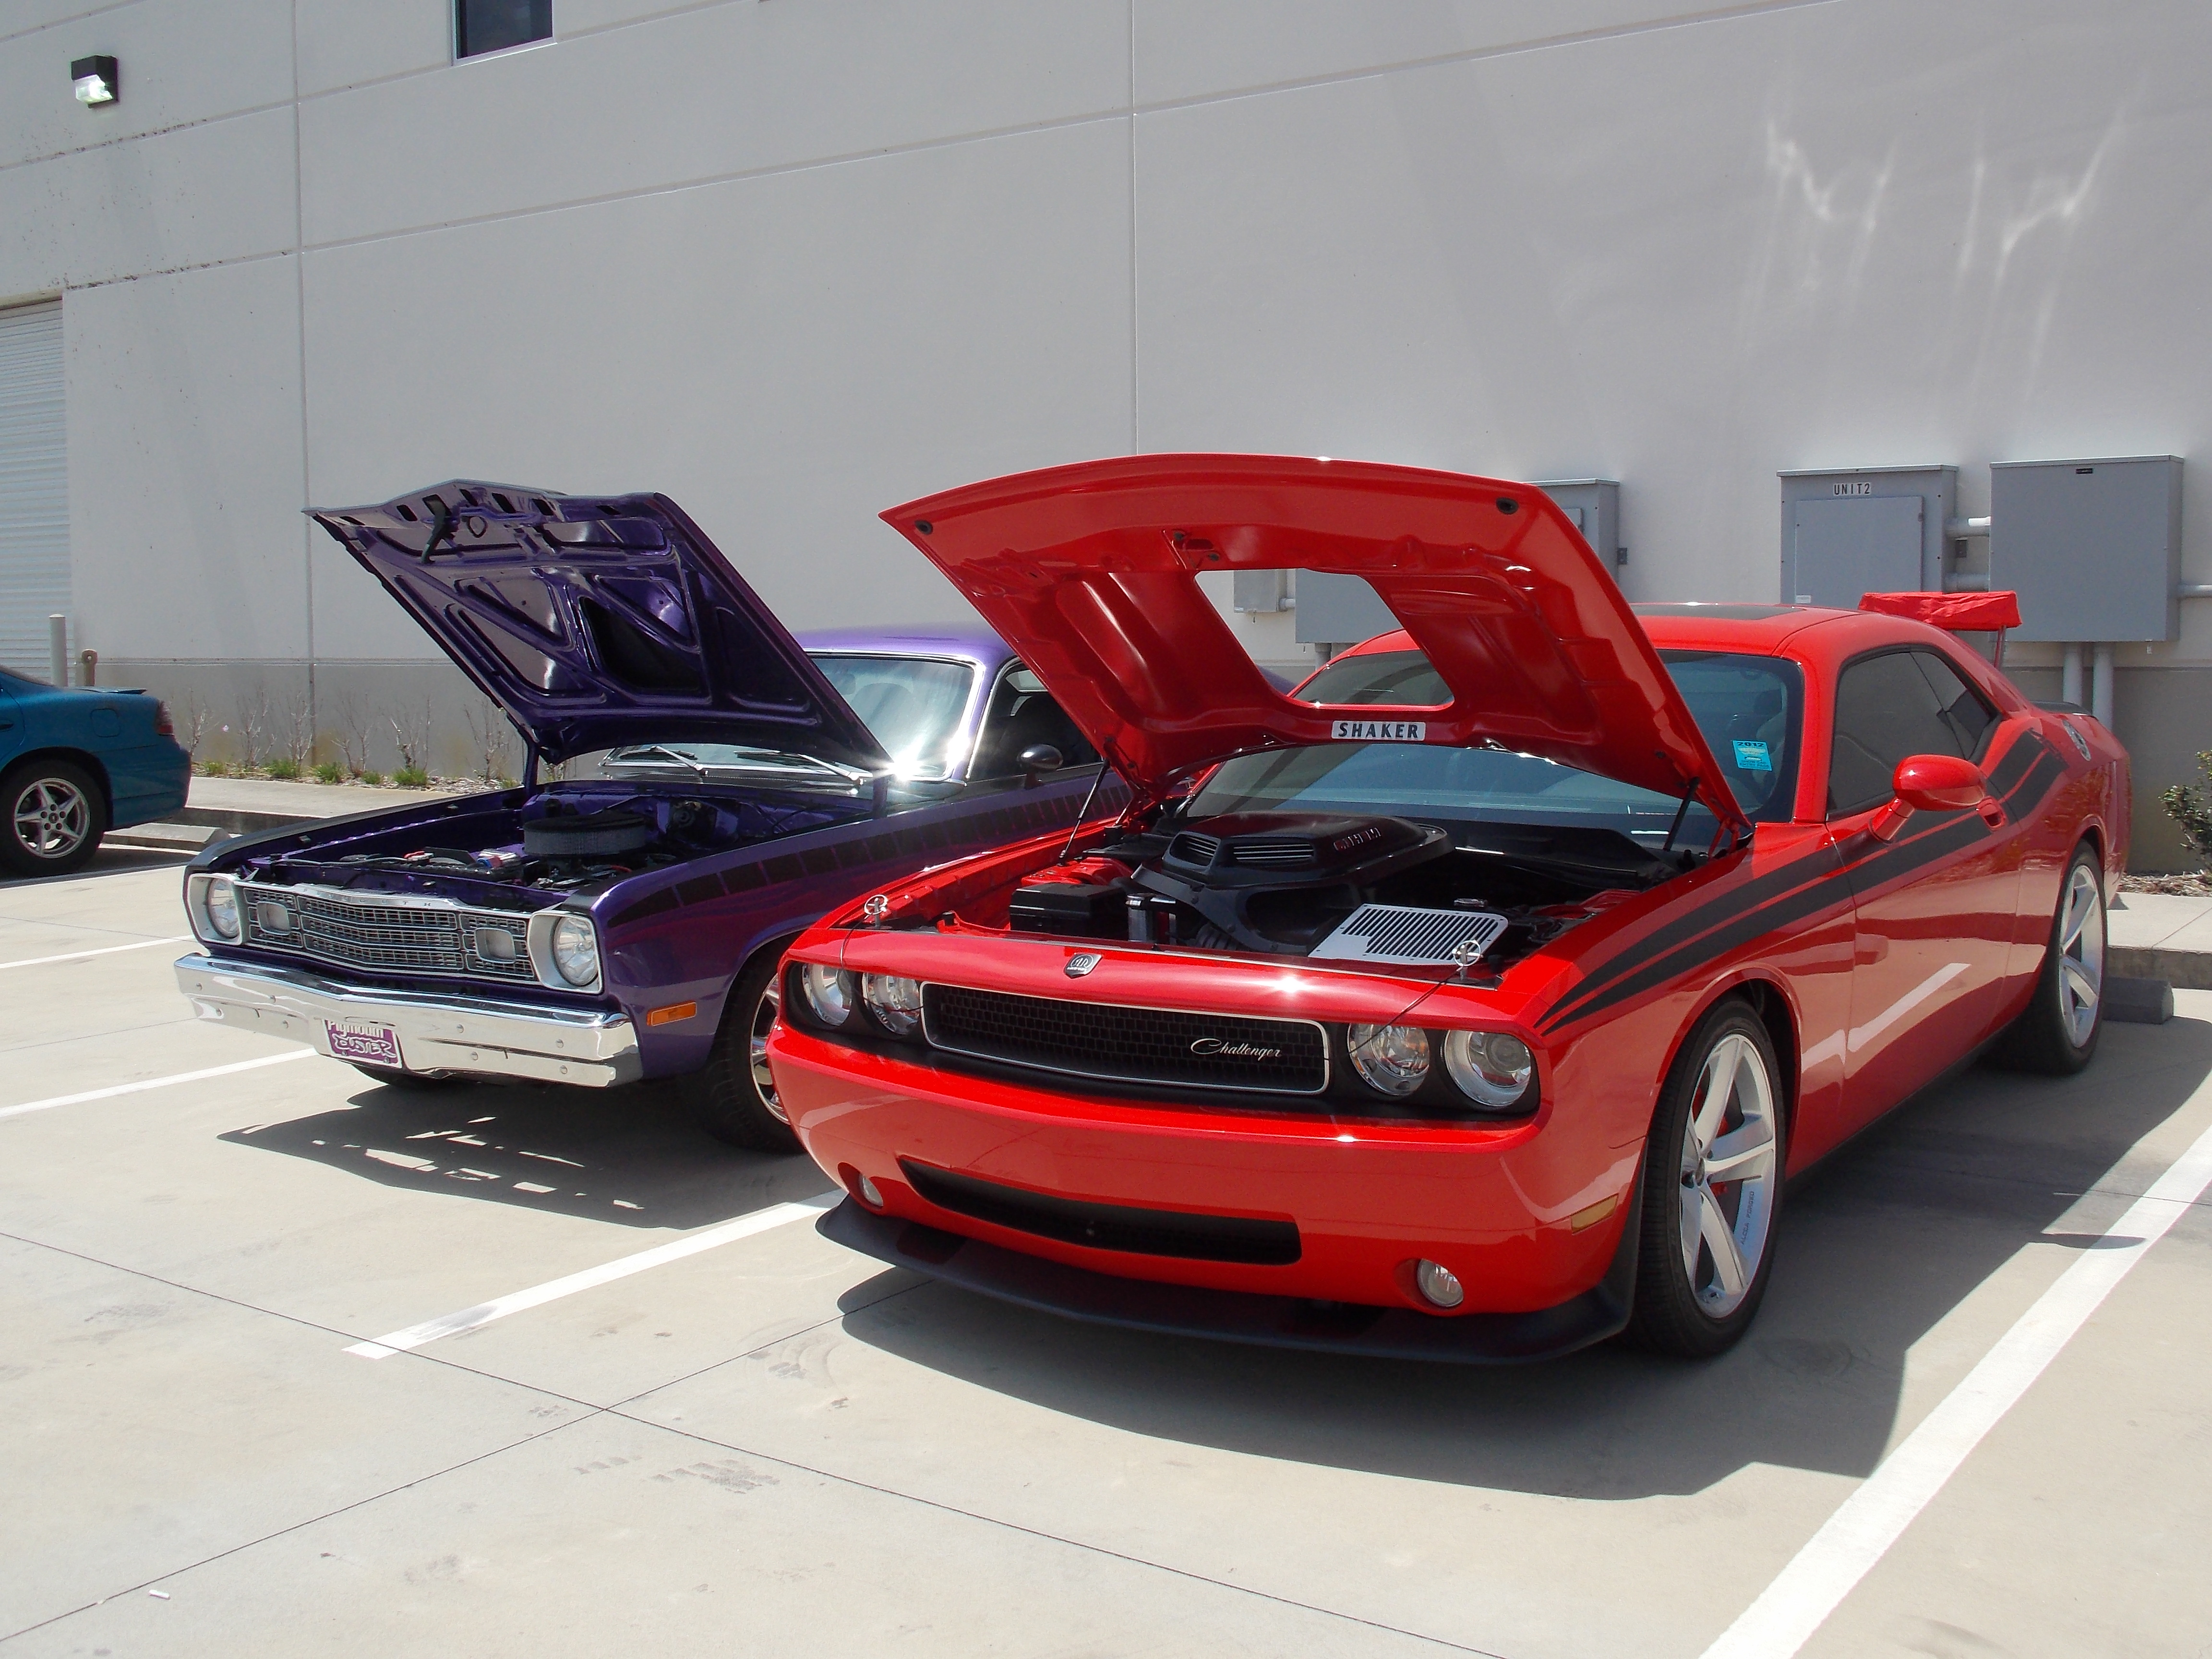 This Plum Crazy Purple 1973 Plymouth Duster owned by Jeff Fox and 2010 Dodge Challenger owned by Dave Sheehan were two beautiful examples of Mopar Muscle.